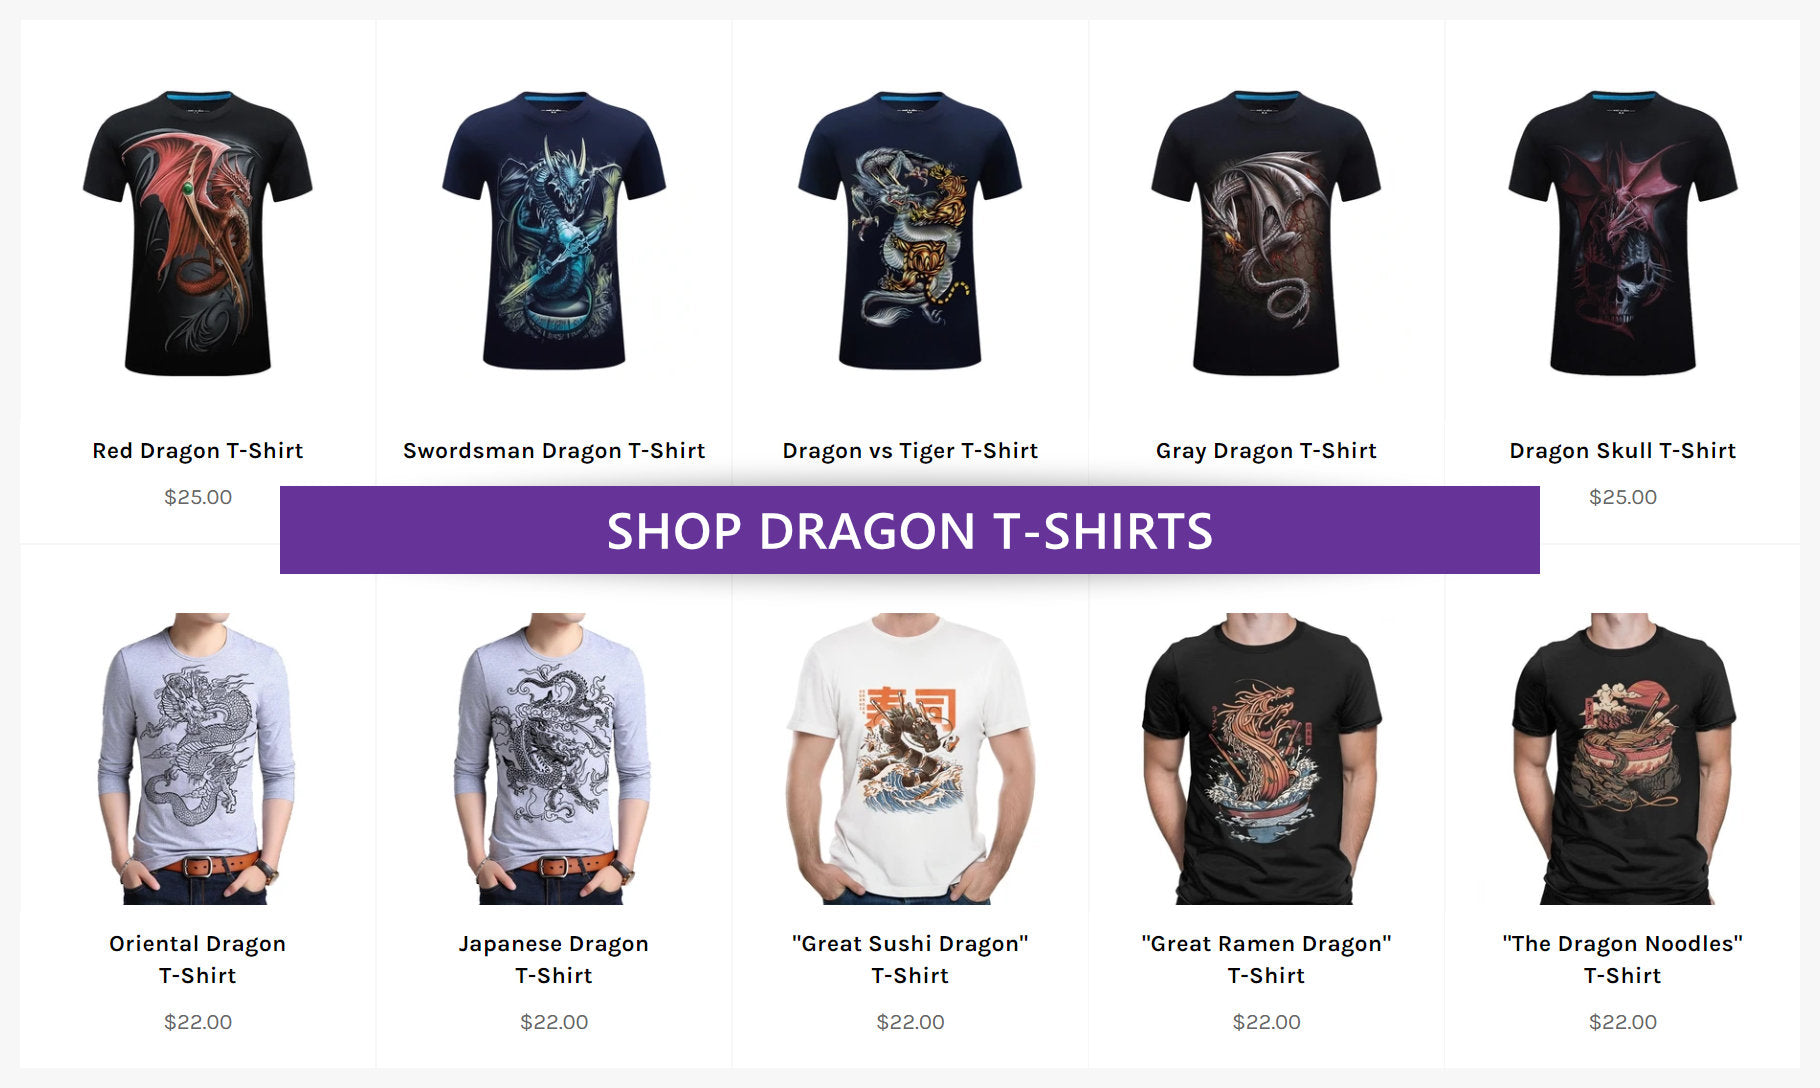 A collection of Dragon T-Shirts